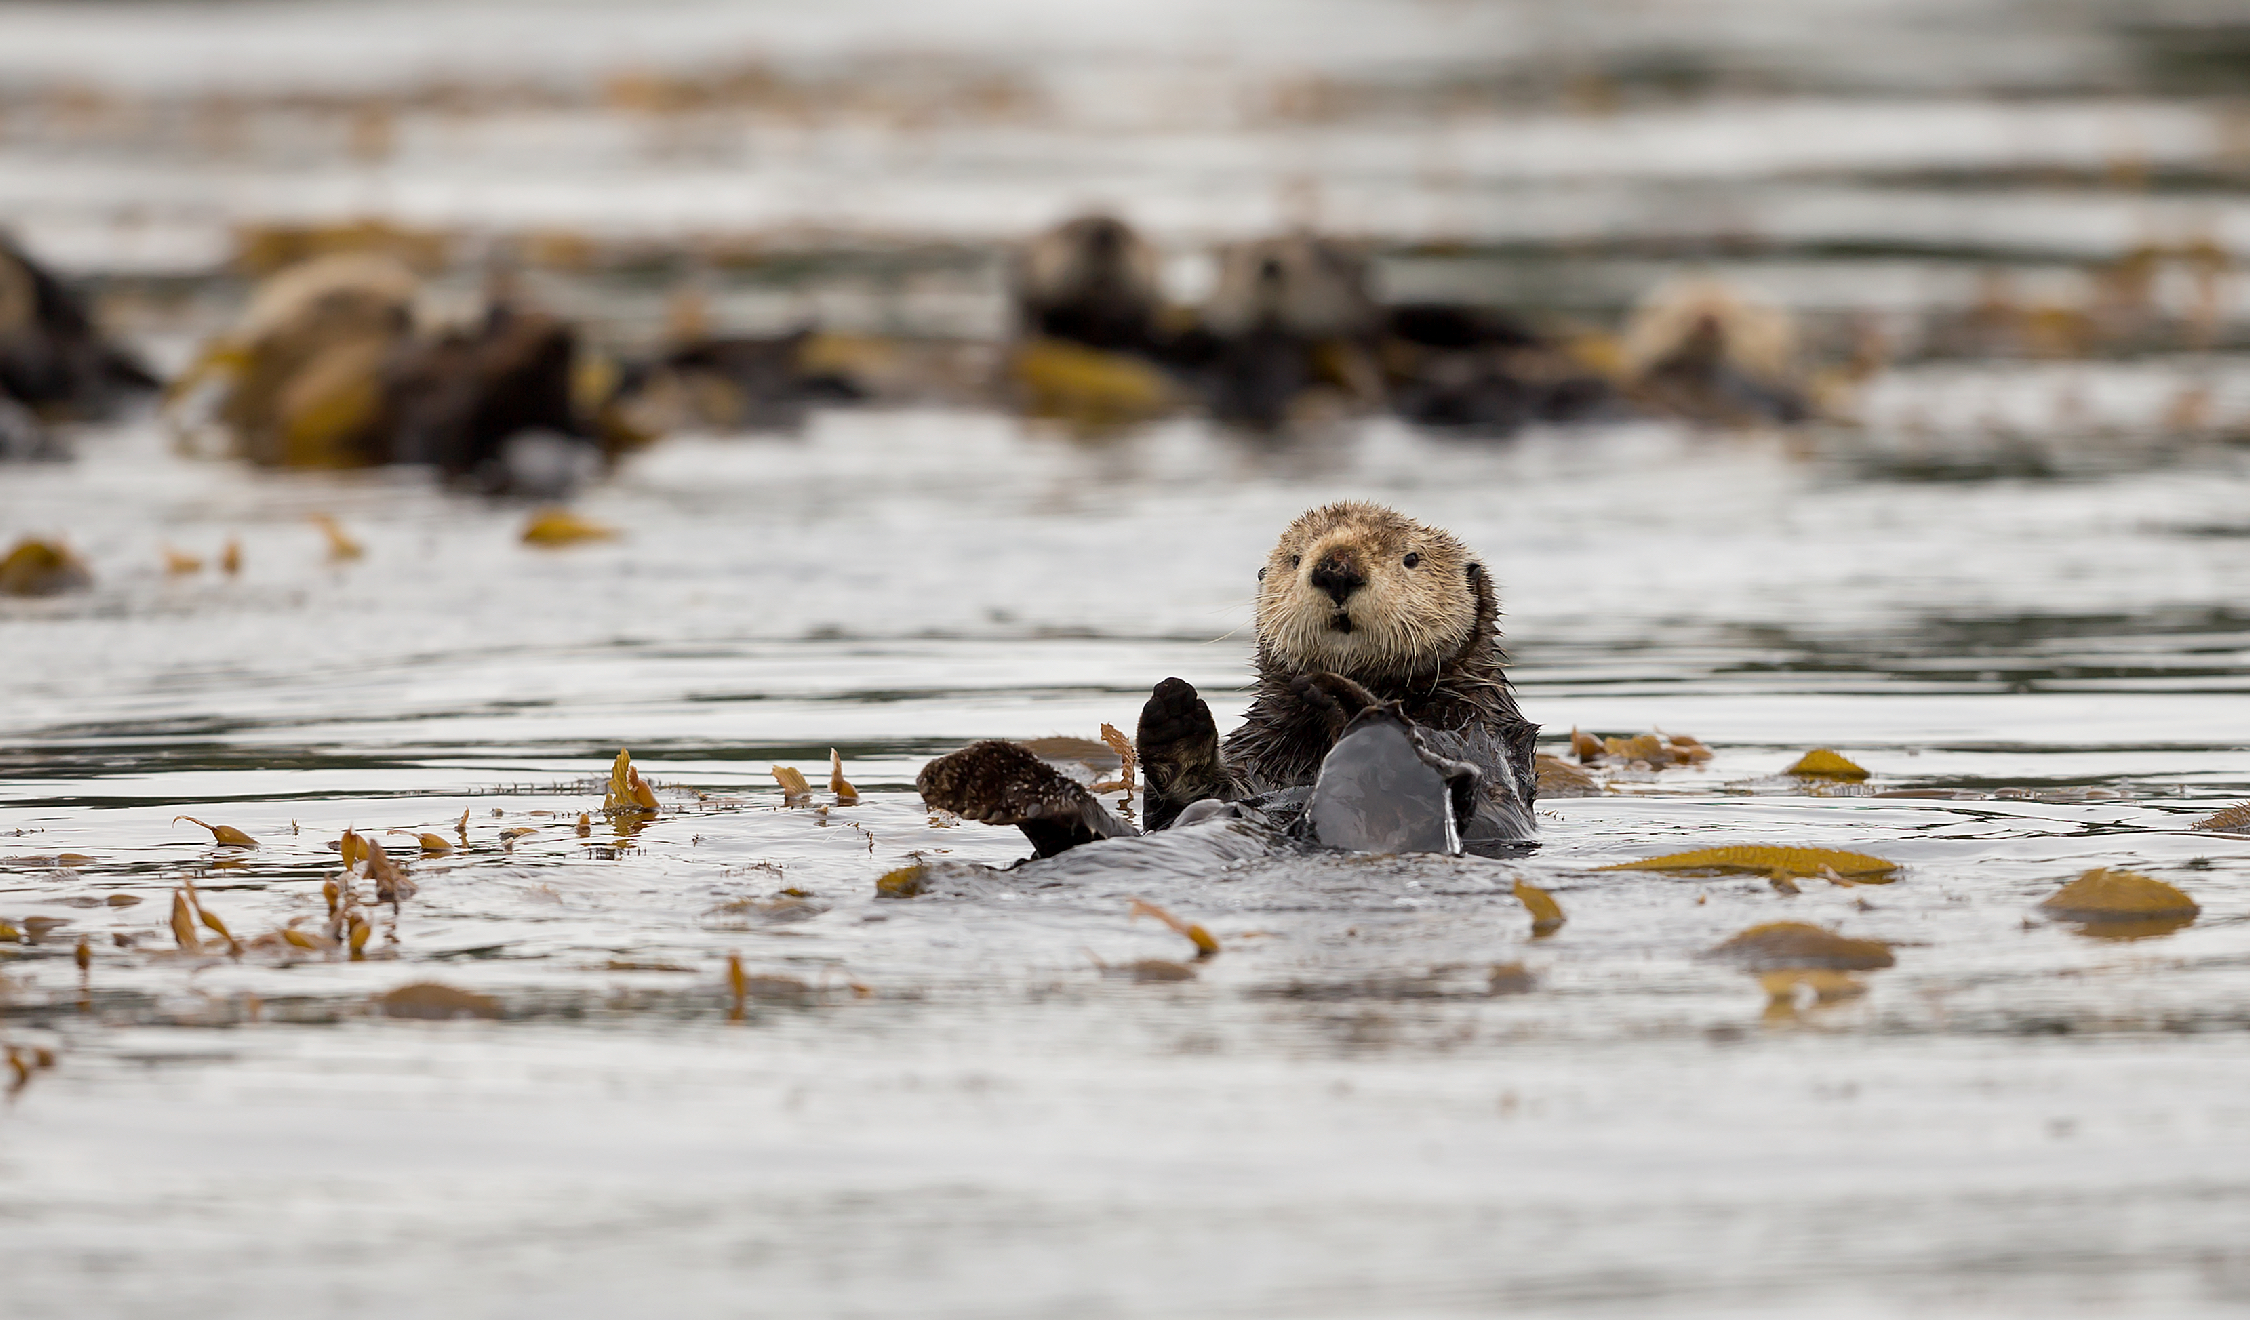 Sea Otter near Spring Island by Kyuquot Sound在春天海岛附近的海獭由Kyuquot声音